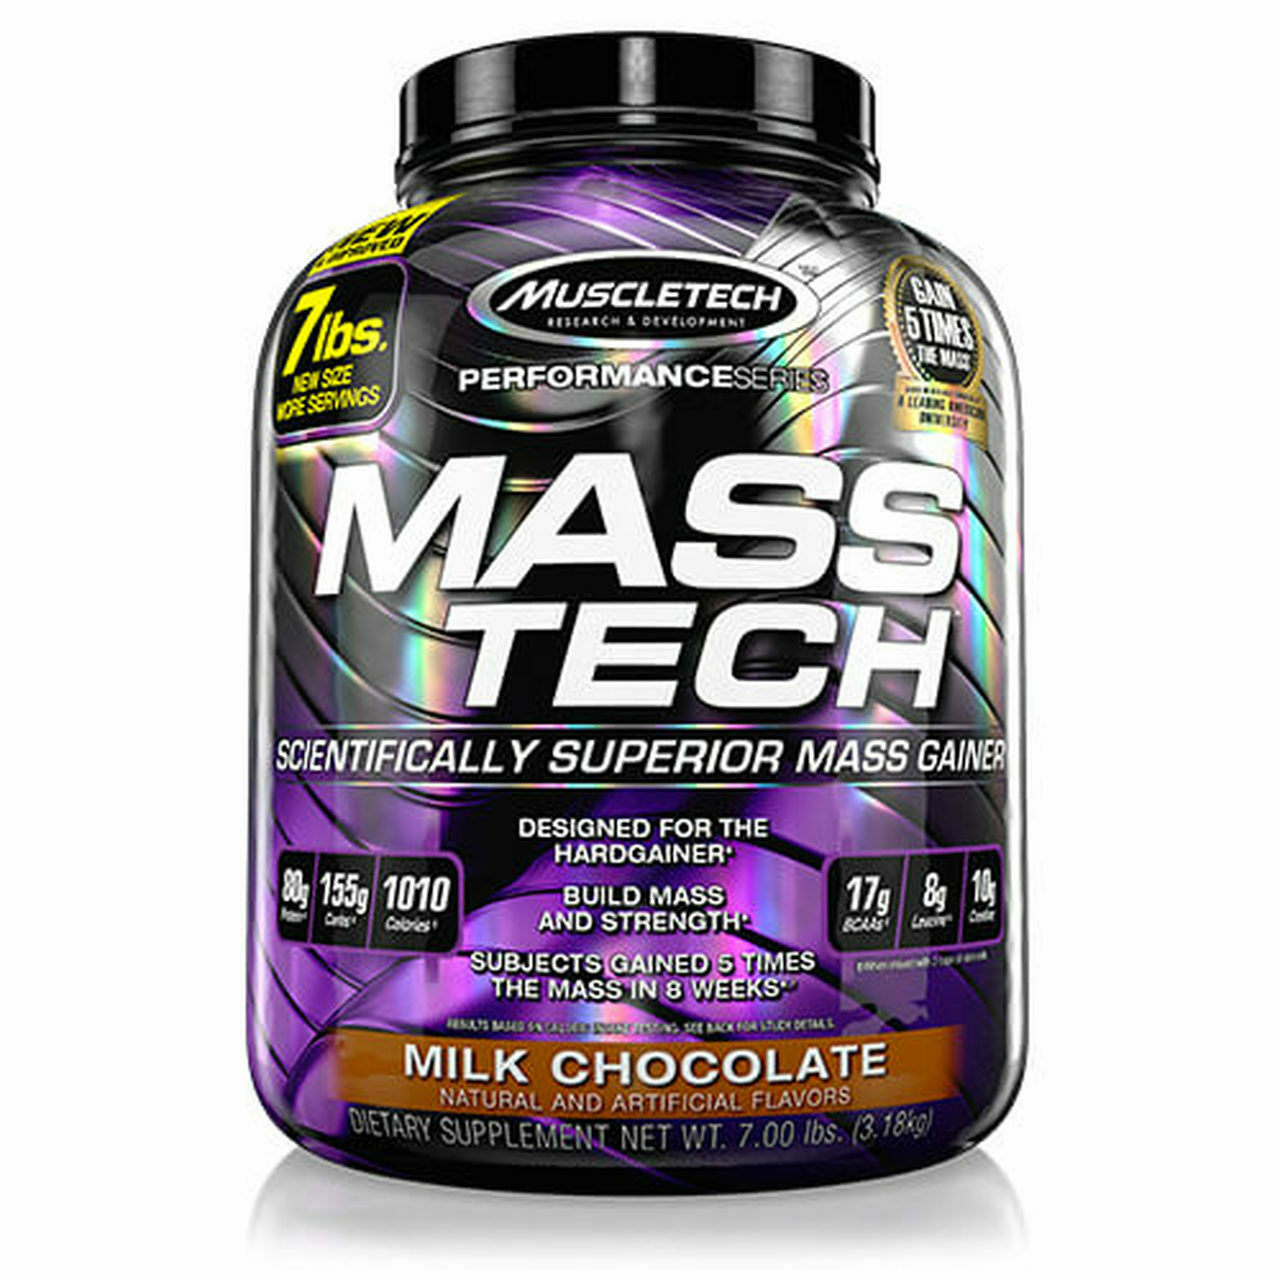 MUSCLETECH MASS TECH  muscle whey protein weight gainer hard